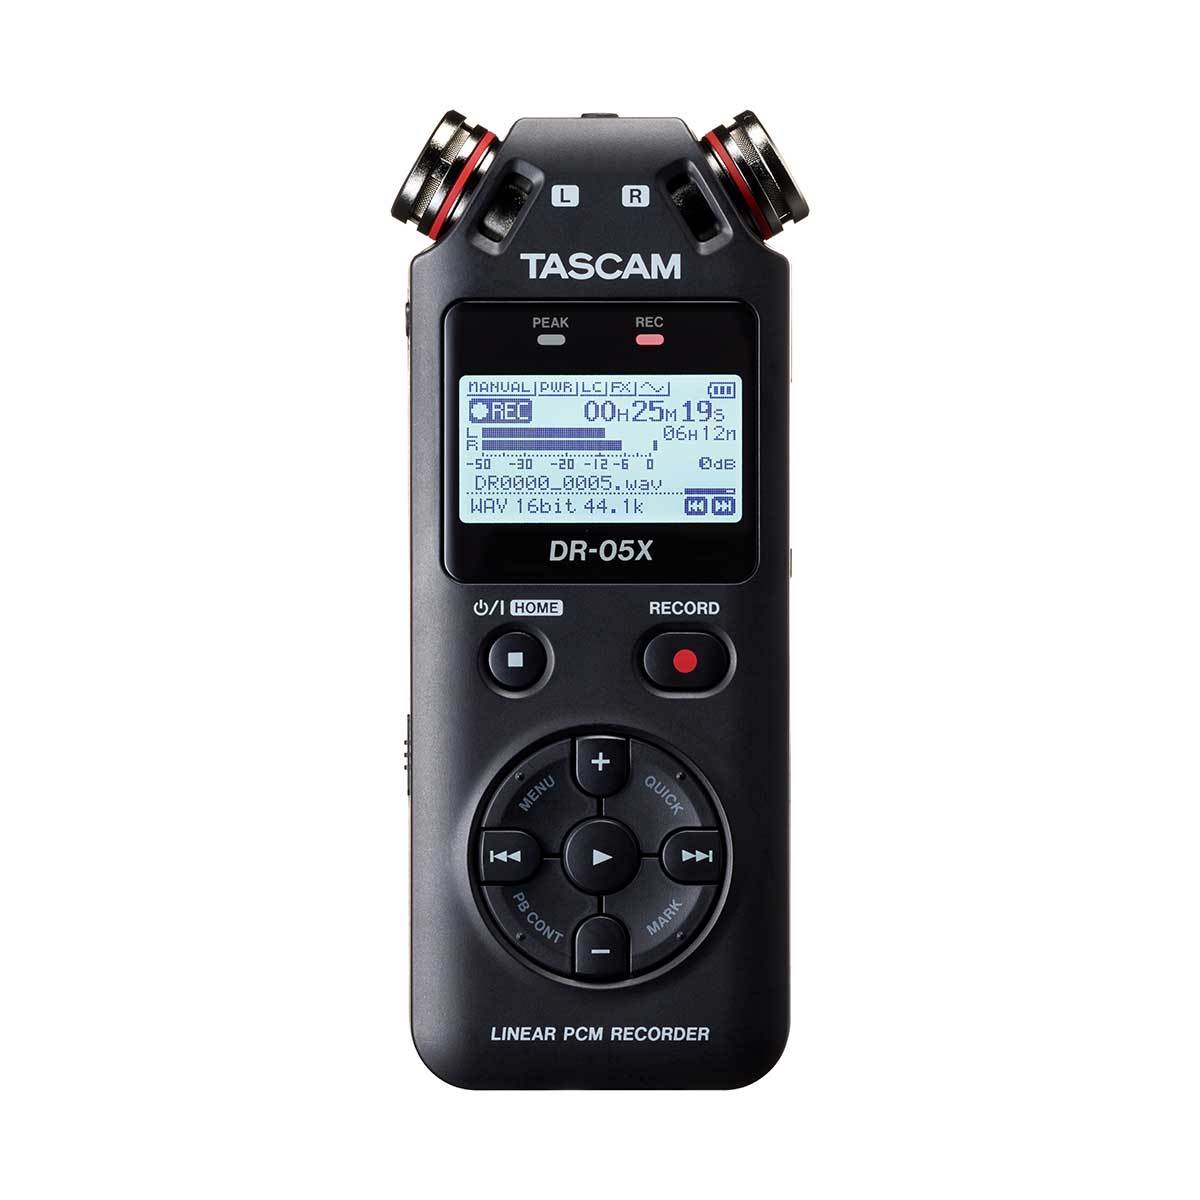 Portable Recorder - Tascam DR-05X Handheld Recorder